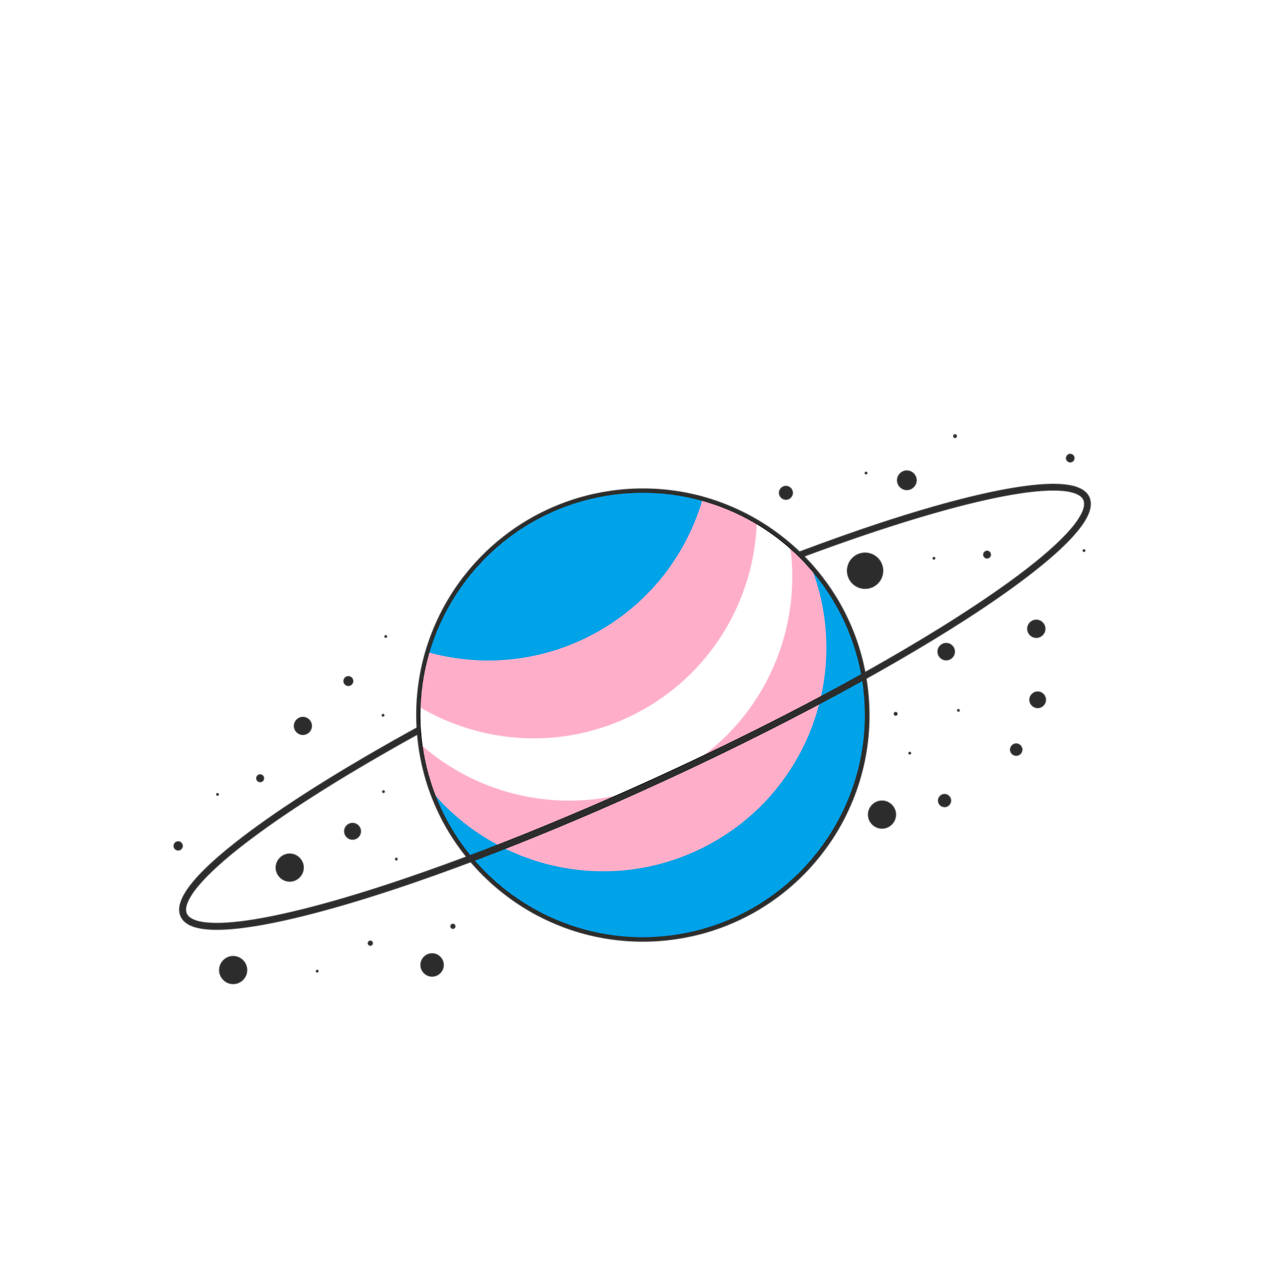 Tumblr planets png. Sweet dreams are made